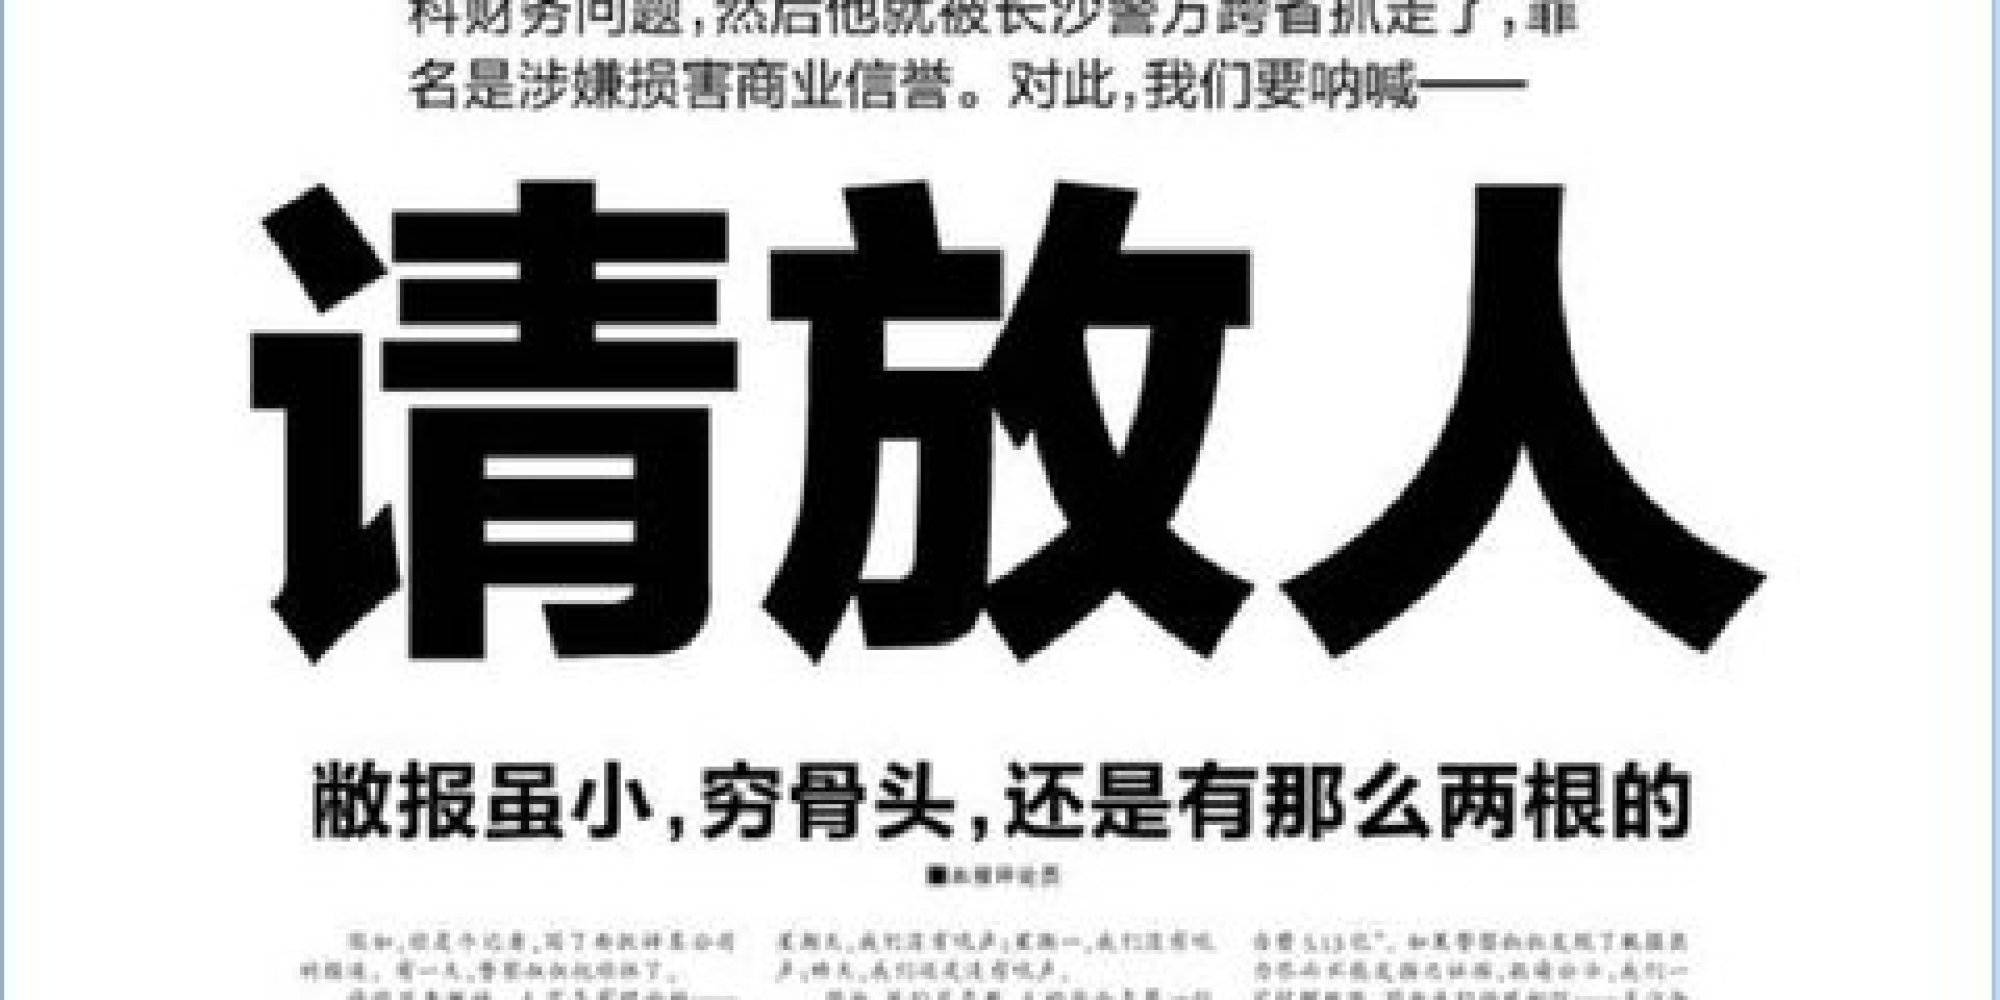 Chinese Newspaper Boldly Demands Release Of Detained